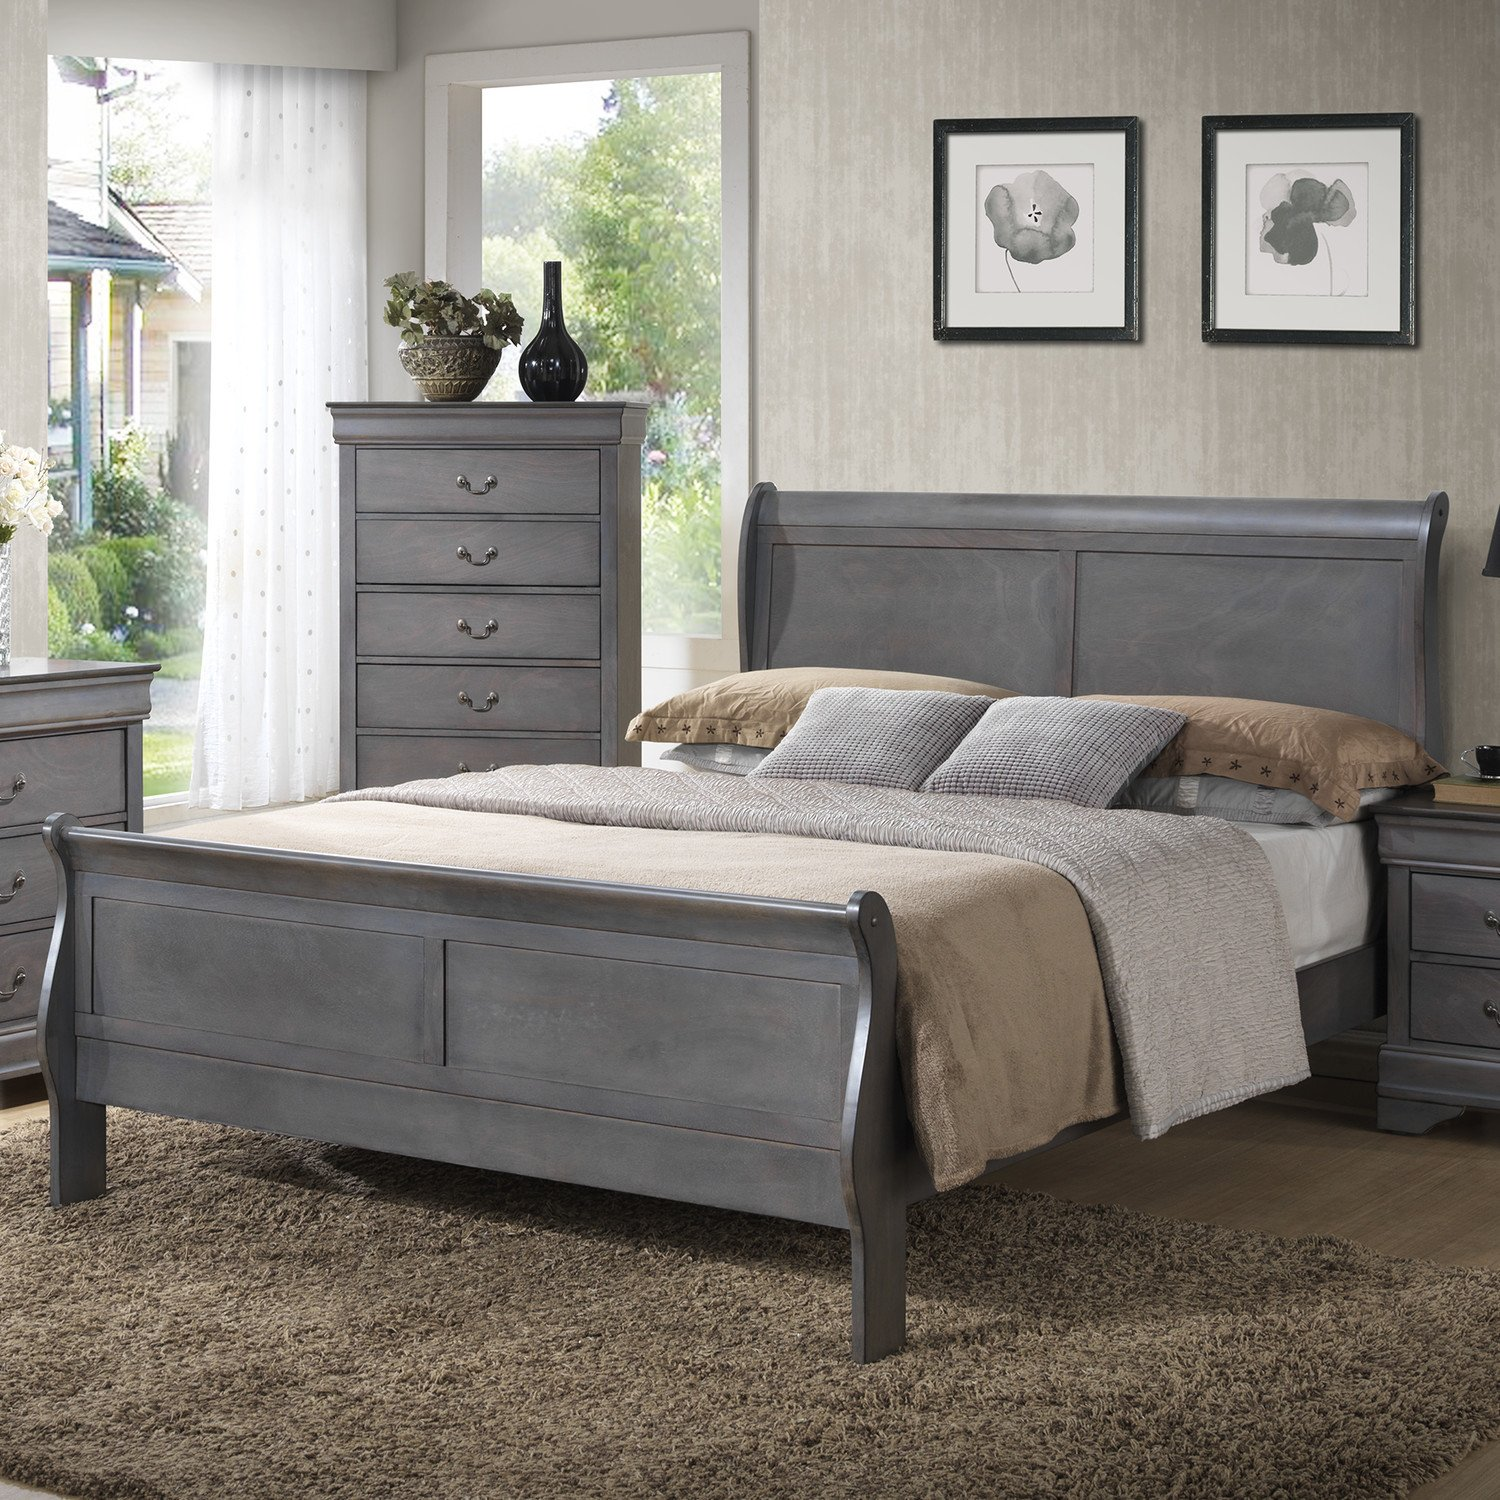 Cortina Sleigh Bedroom Set Beautiful Bedroom Royal Queen Sleigh Bed Frame with Elegant Creative